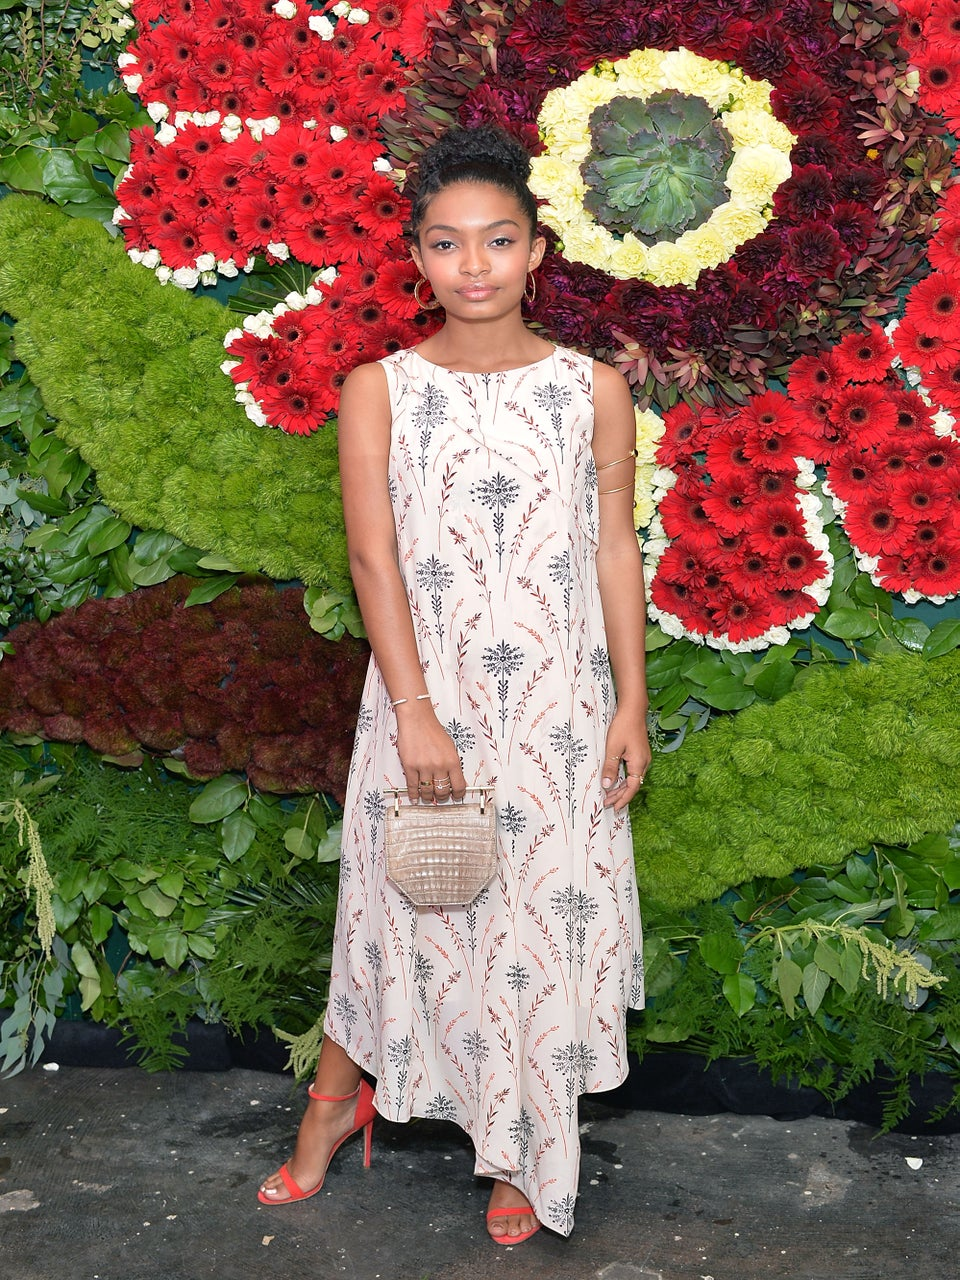 Look of the Day: Yara Shahidi Does Florals Right in Ethereal Flowing Dress